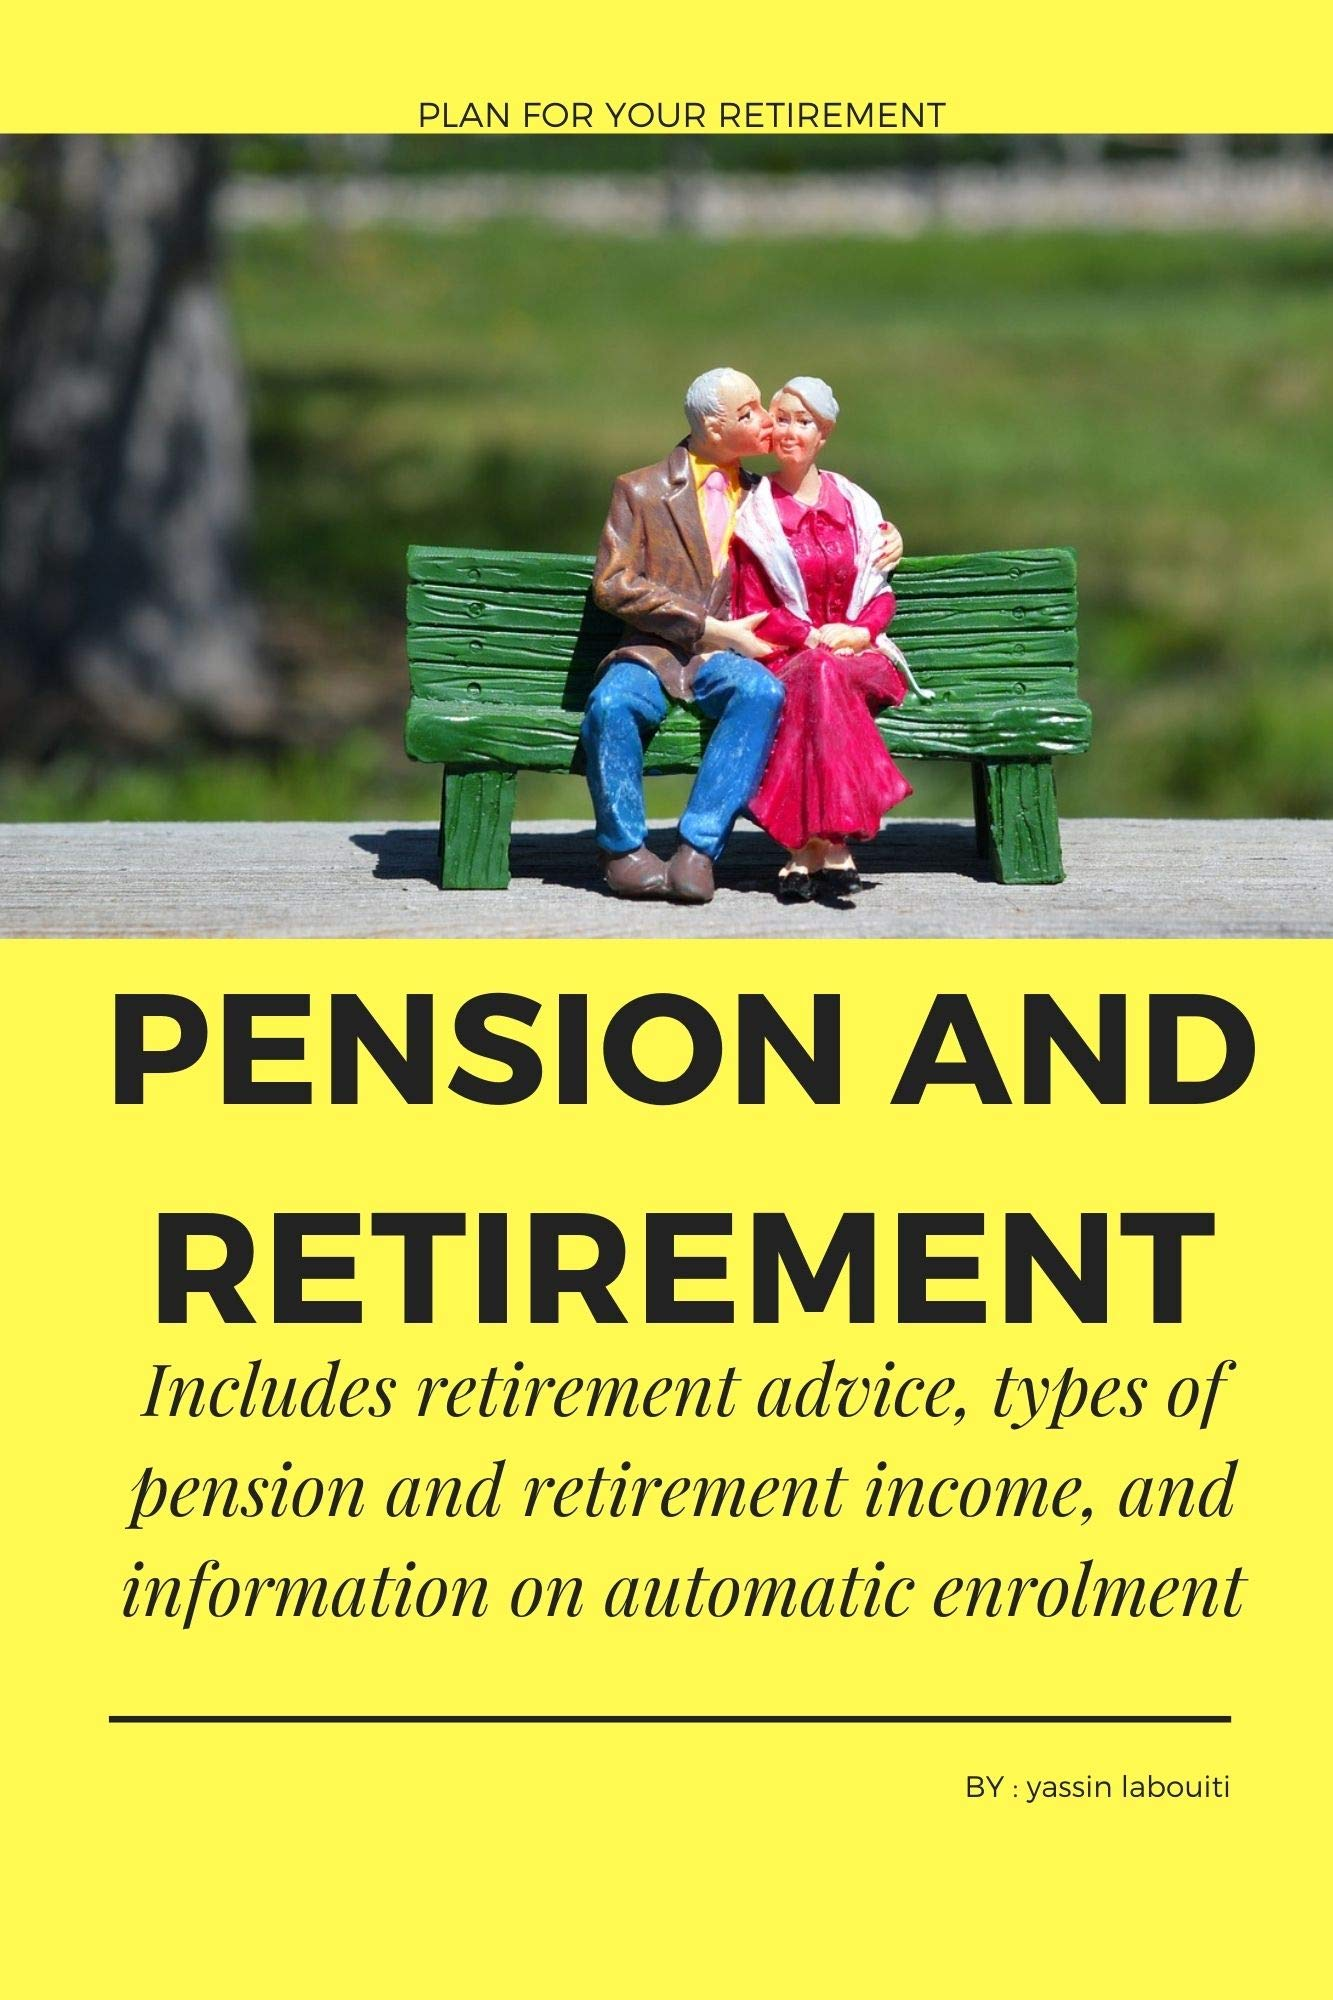 PENSION and RETIREMENT: Includes retirement advice, types of pension and retirement income, and information on automatic enrolment